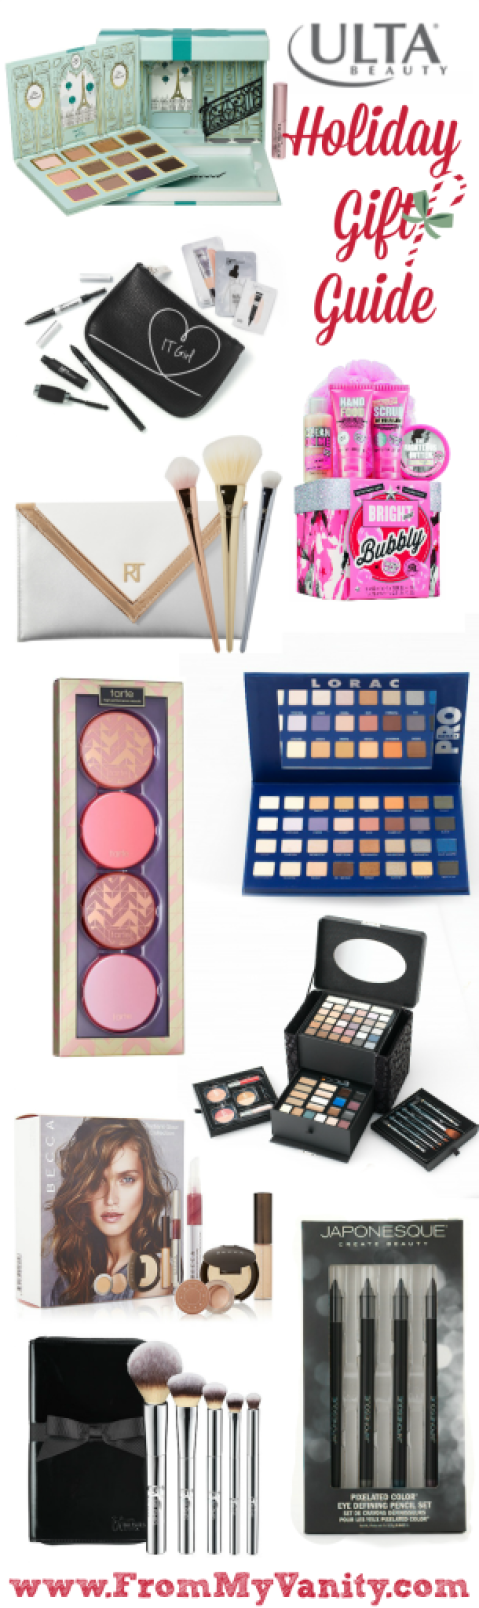 My Top 10 Ulta Gift Set Picks // Holiday Gift Guide // Beauty Gifts // #UltaBeauty #GiftGuide FromMyVanity.com